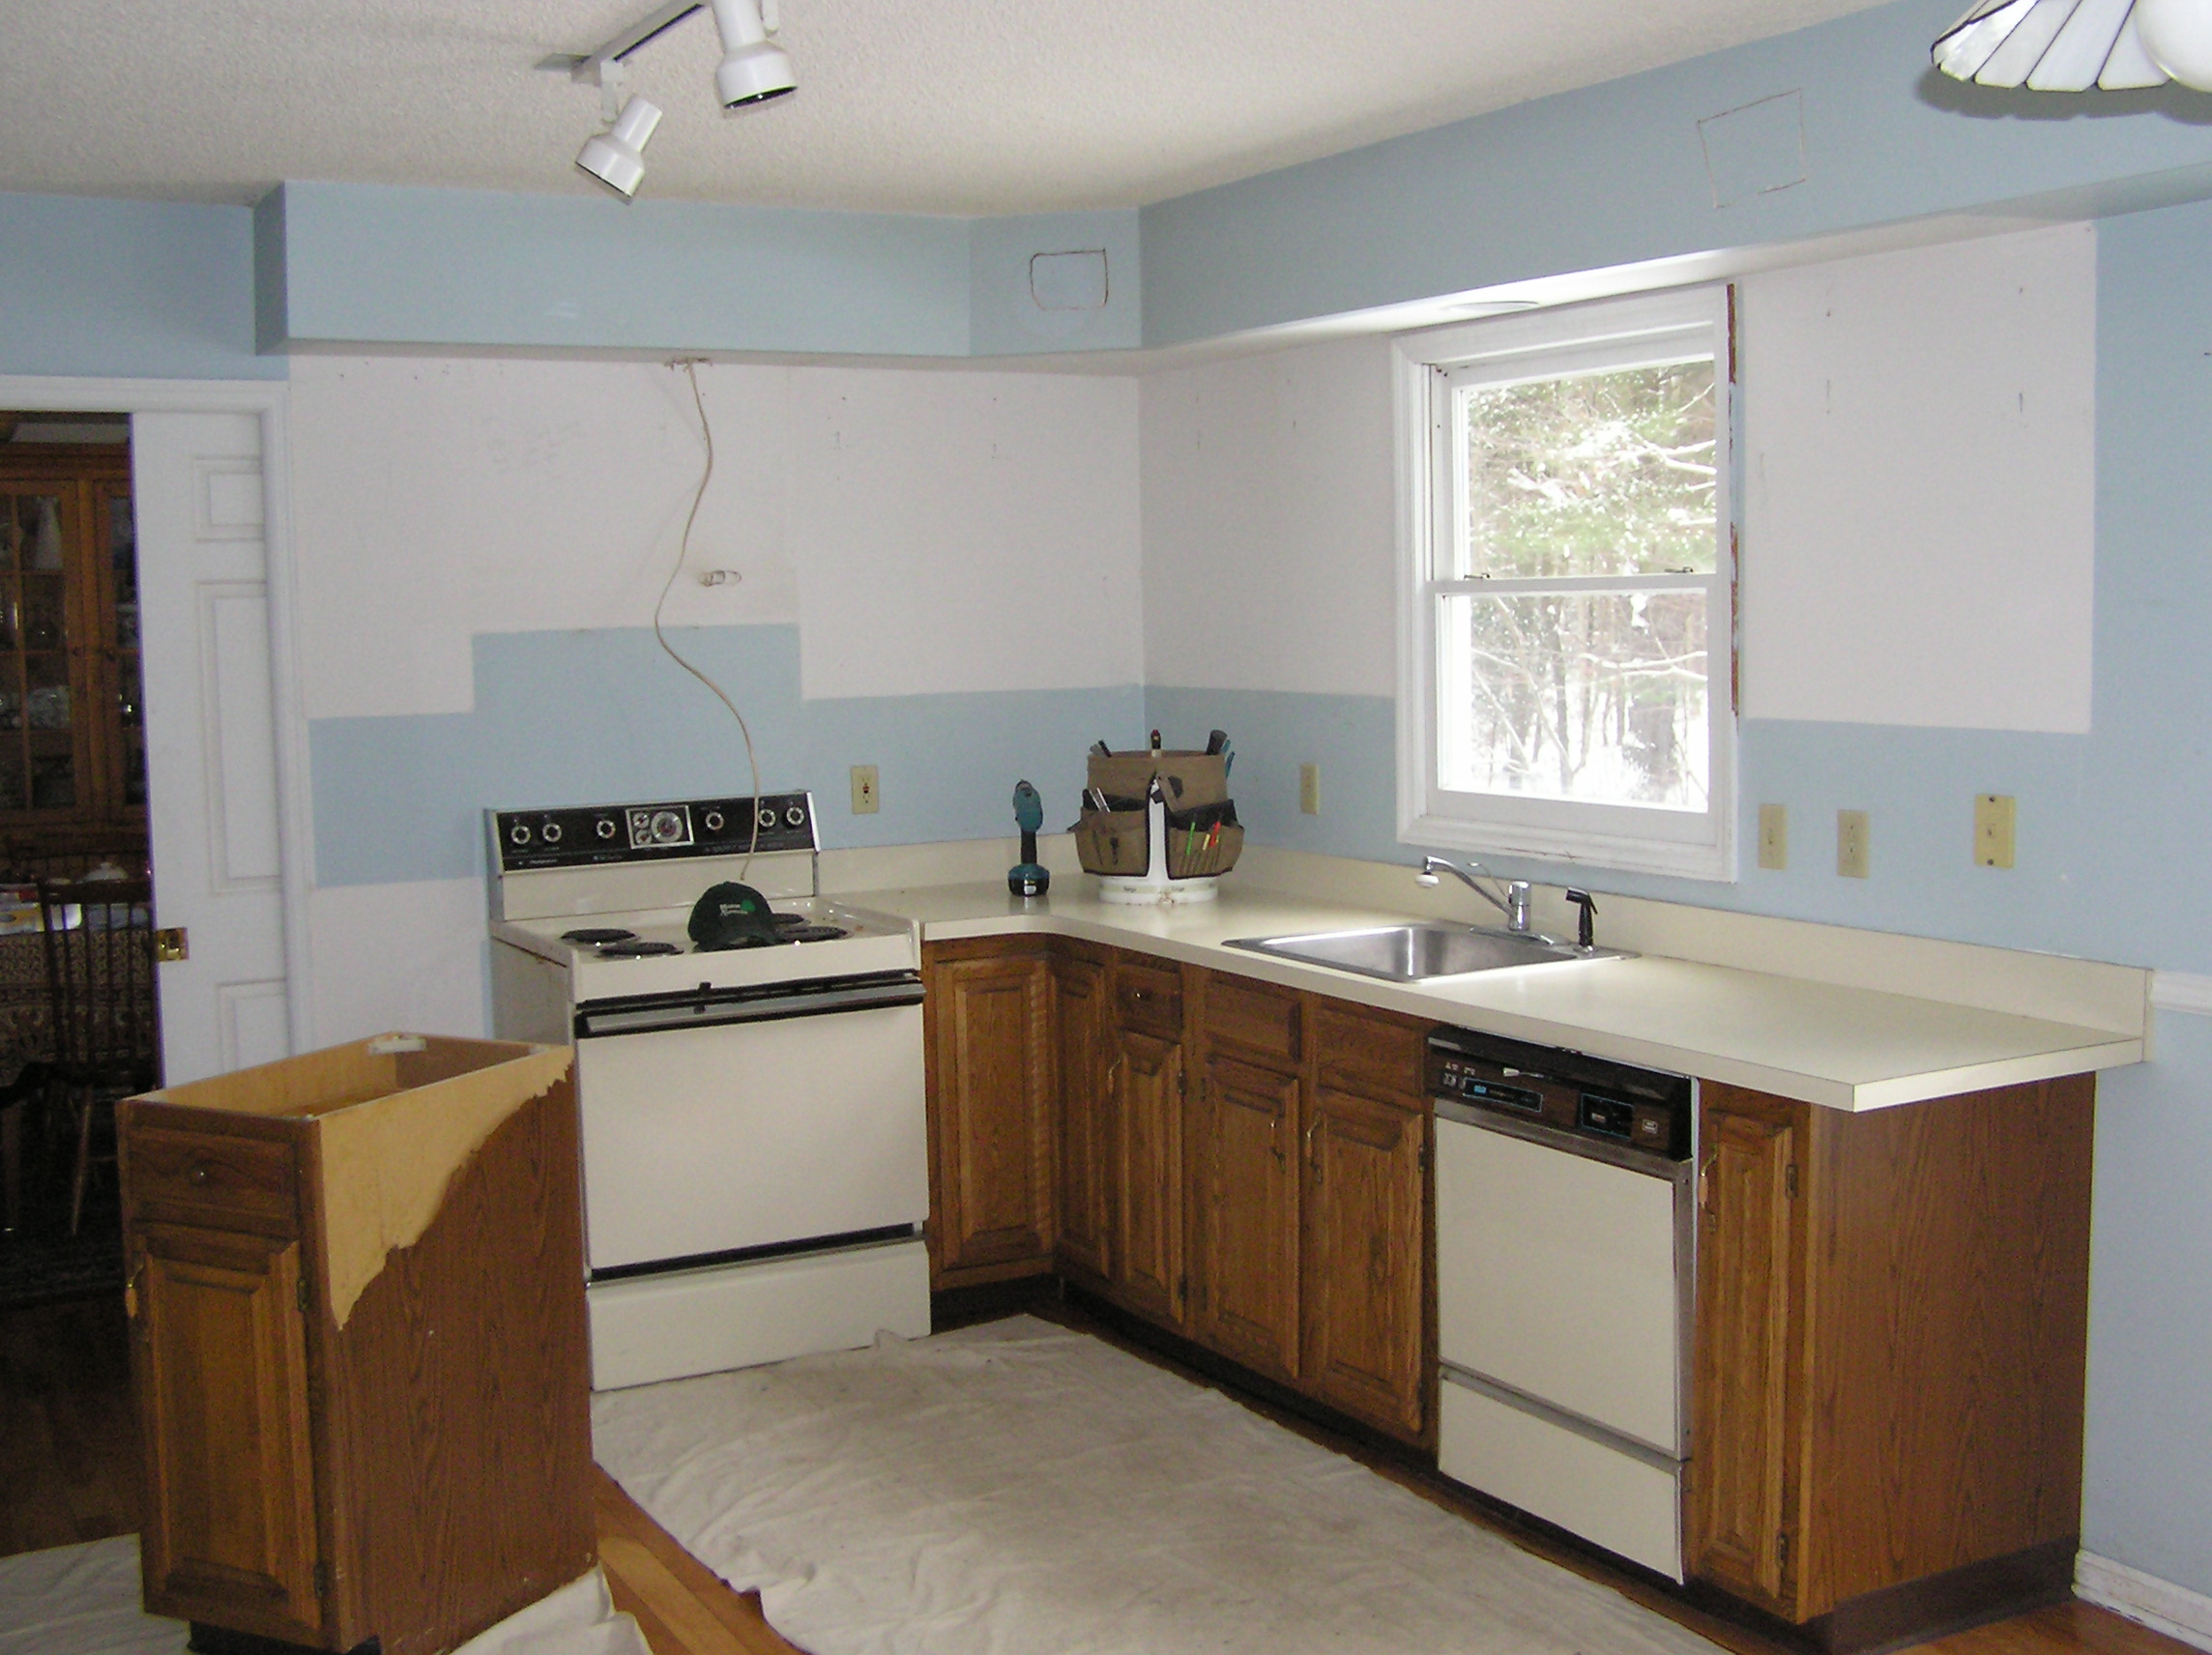 Thompson Kitchen: January 2005